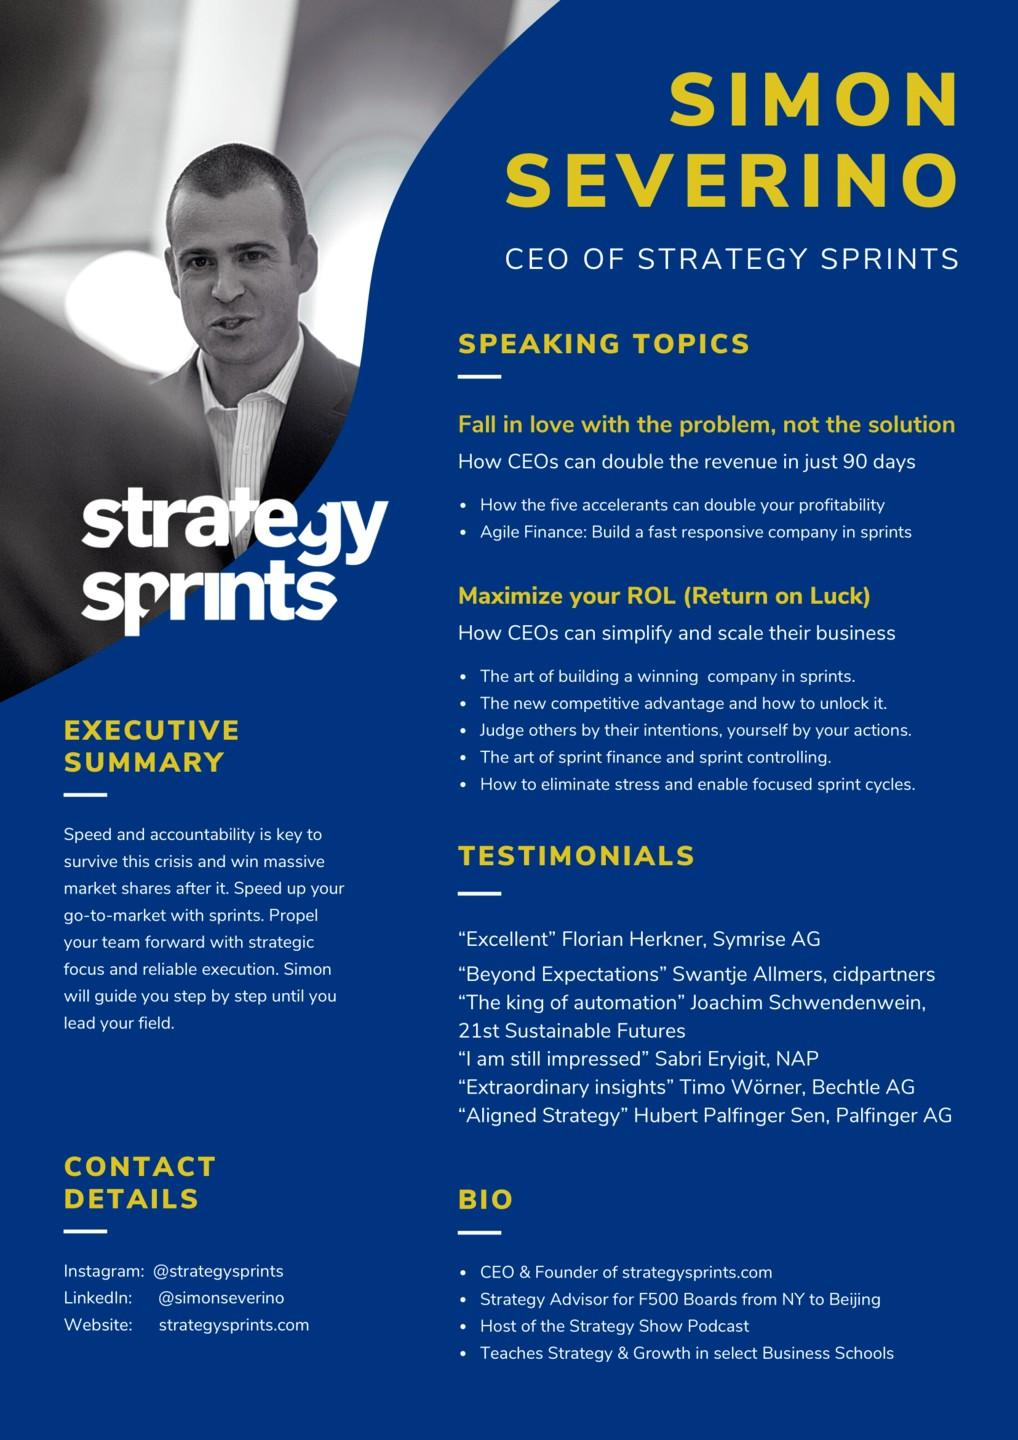 Simon Severino speaking page with summary speaking topics, testimonials, contacts and bio